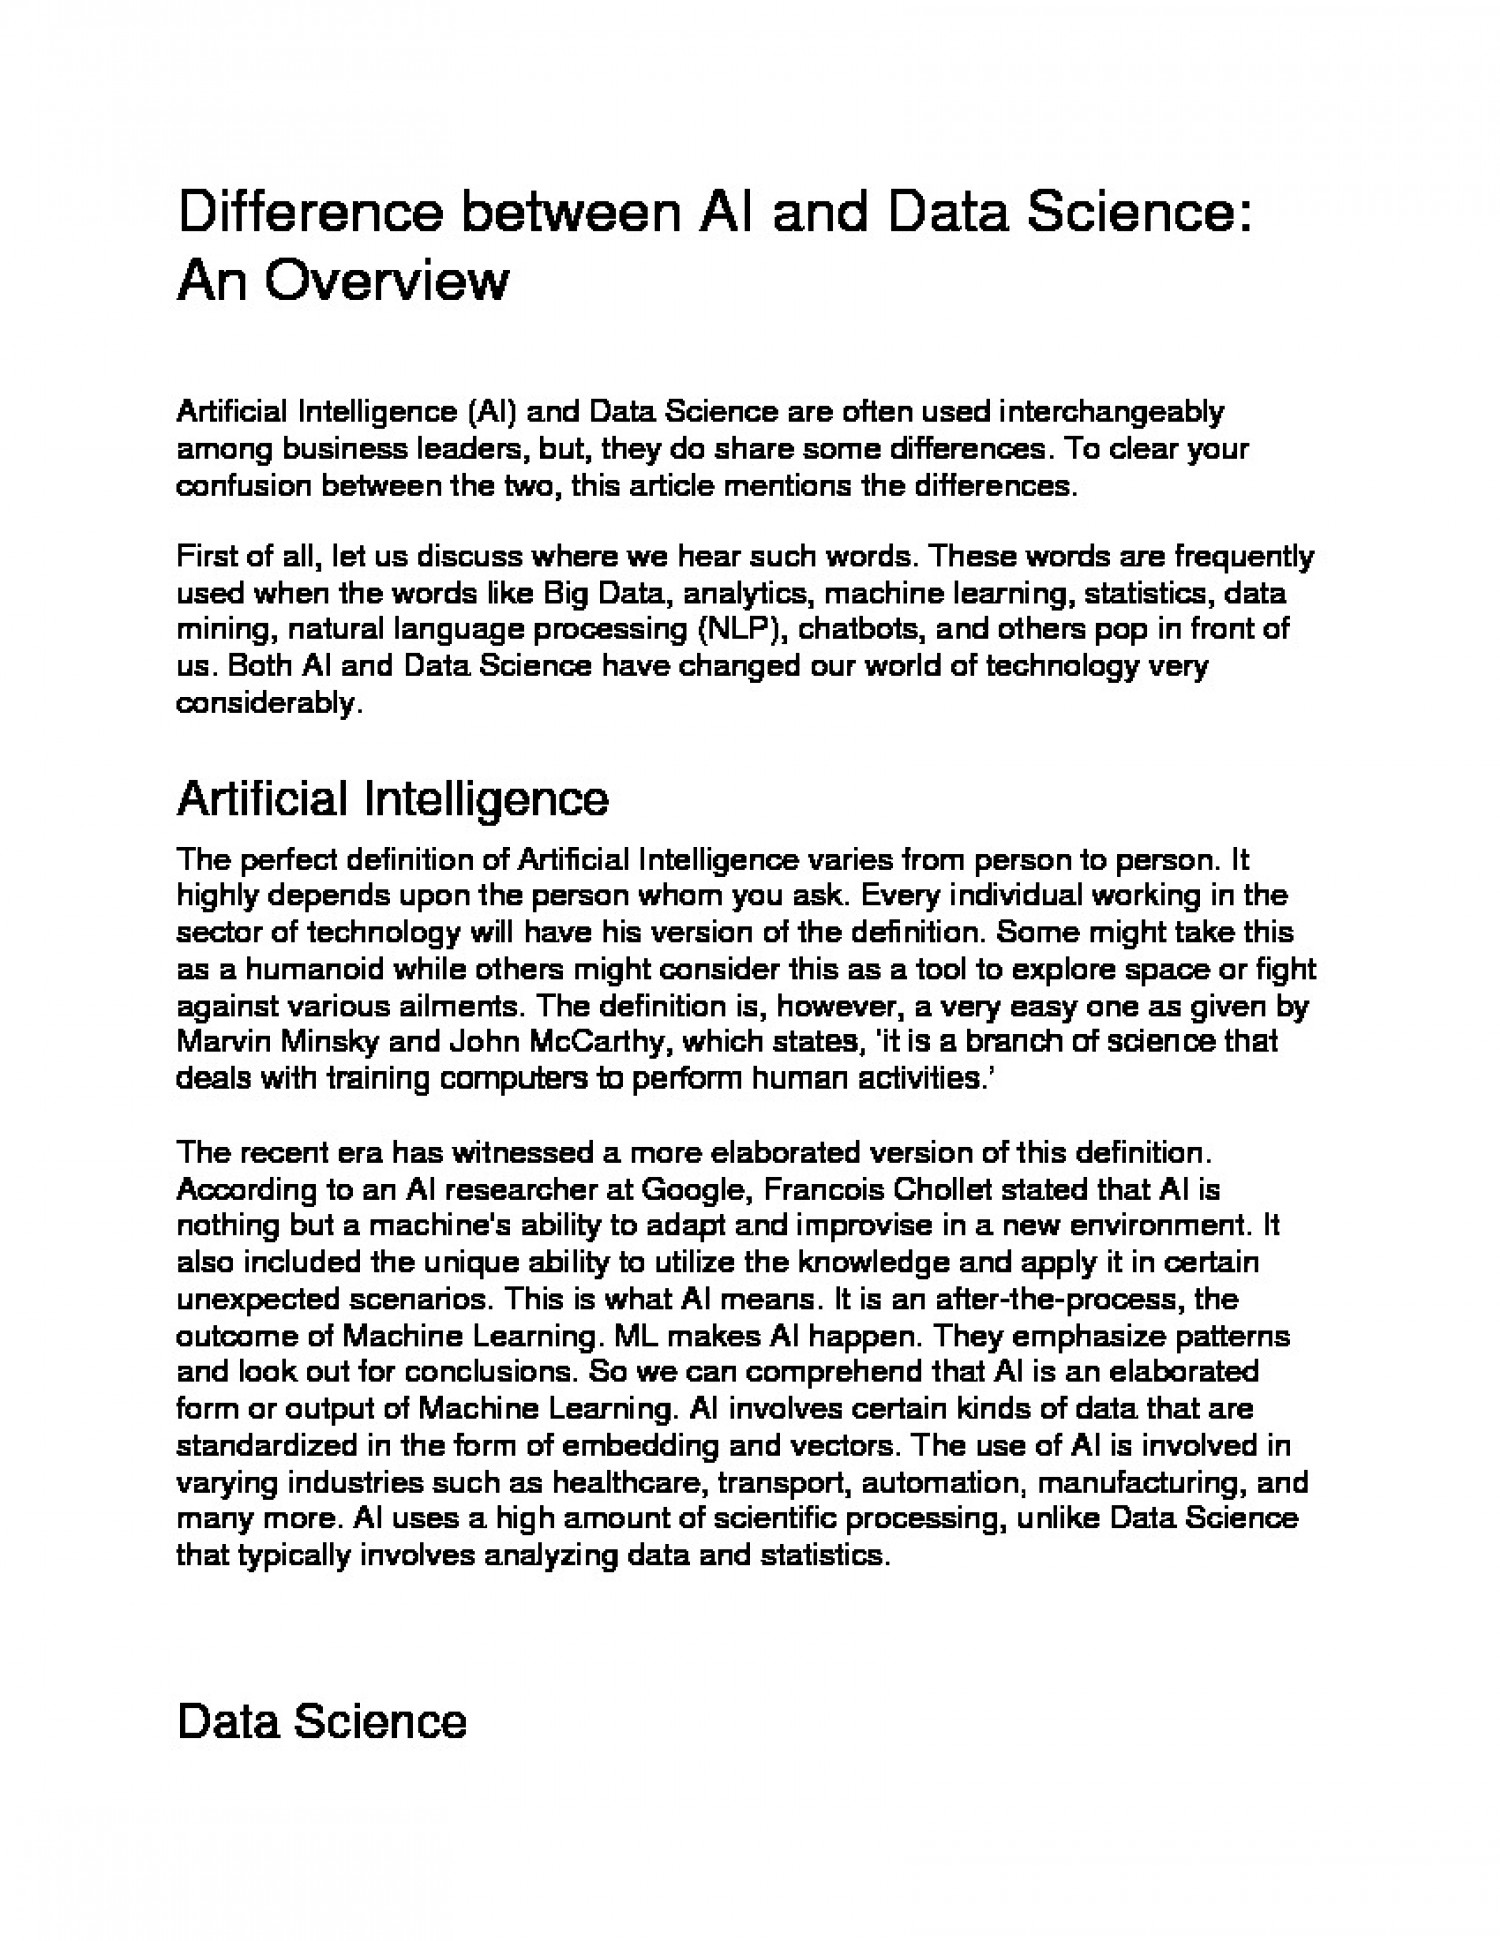 Difference between AI and Data Science: An Overview Infographic